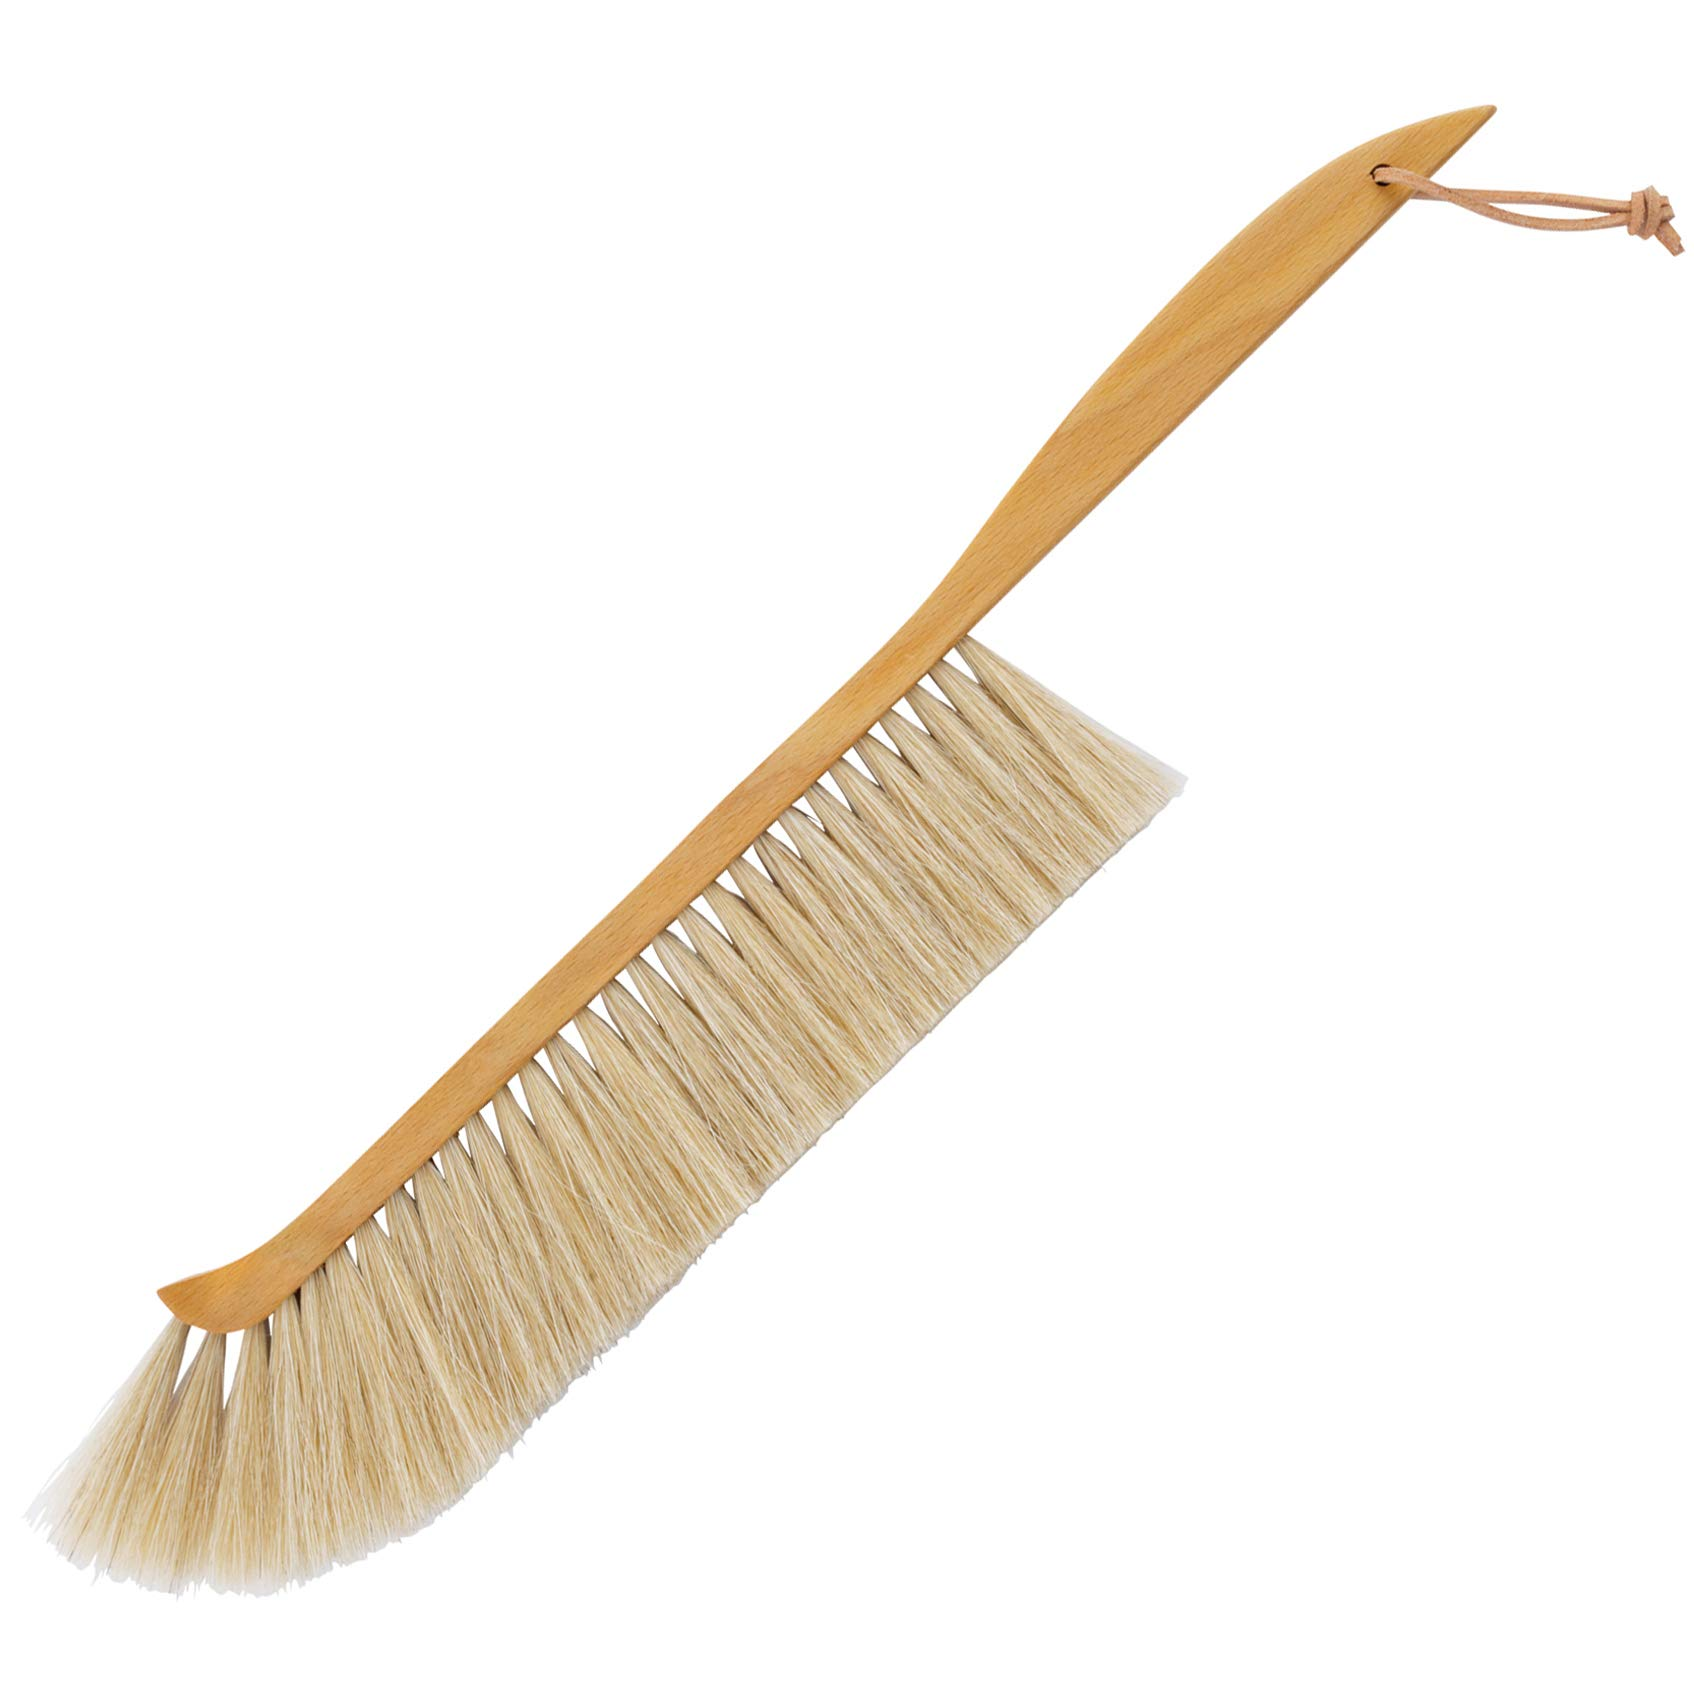 Redecker Natural Fiber Beekeeper's Broom, Horsehair Bristles, Oiled Beechwood Handle, 19-1/4'', Made in Germany